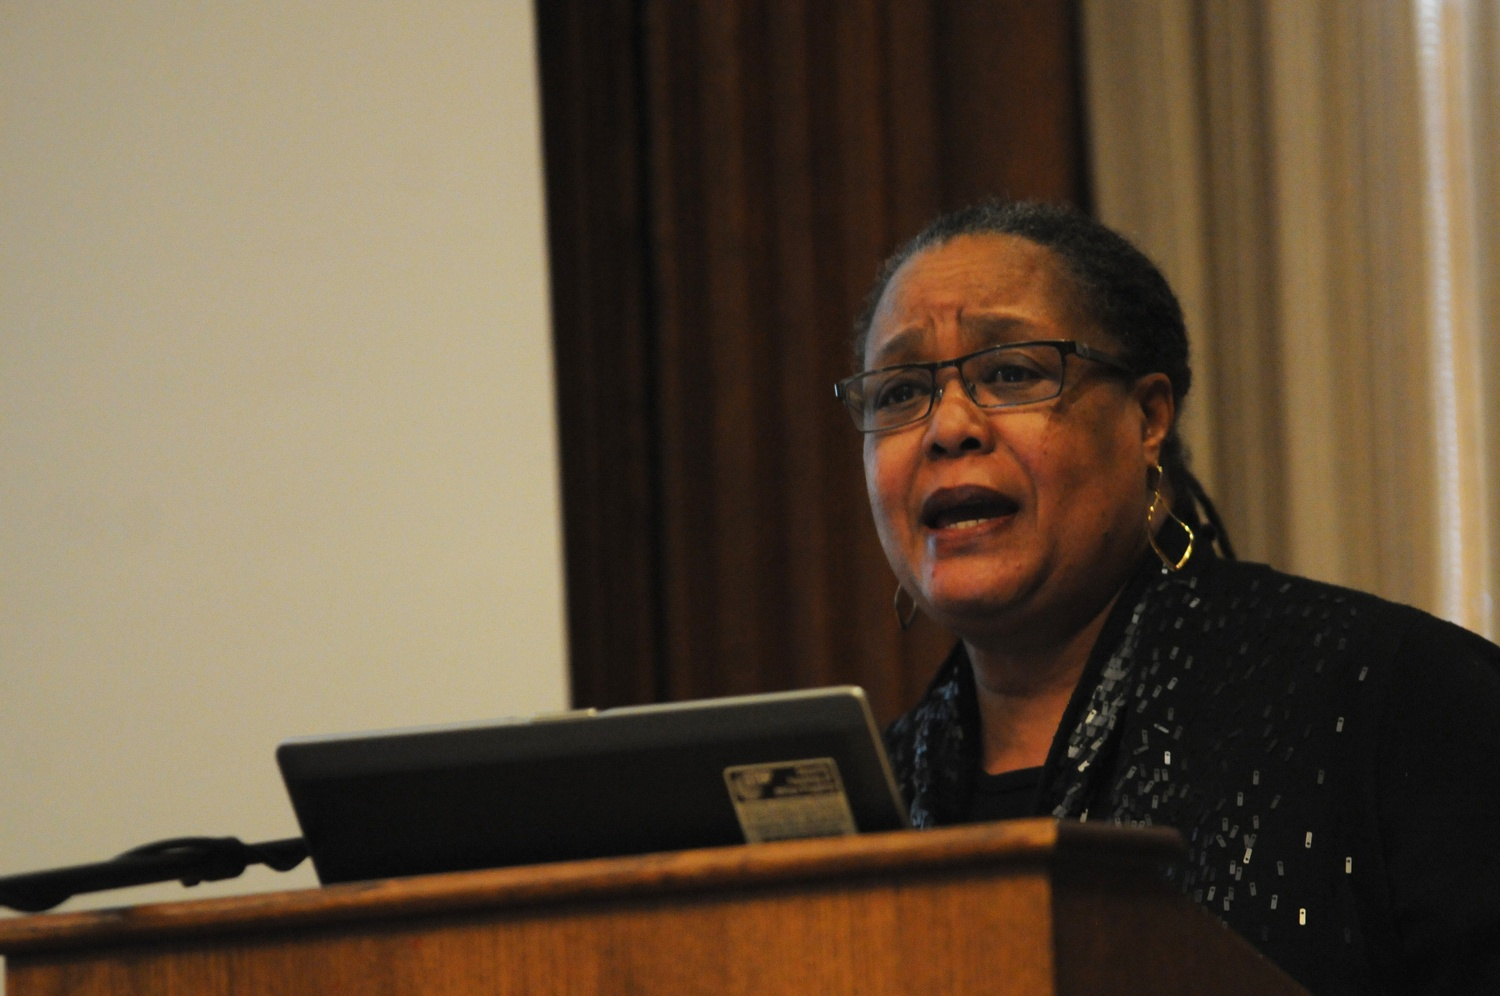 """Professor Evelynn M. Hammonds, former Dean of the College, discusses """"The Negro Scientist"""" by W.E.B. Du Bois and diversity in scientific research on Wednesday in the Barker Center."""